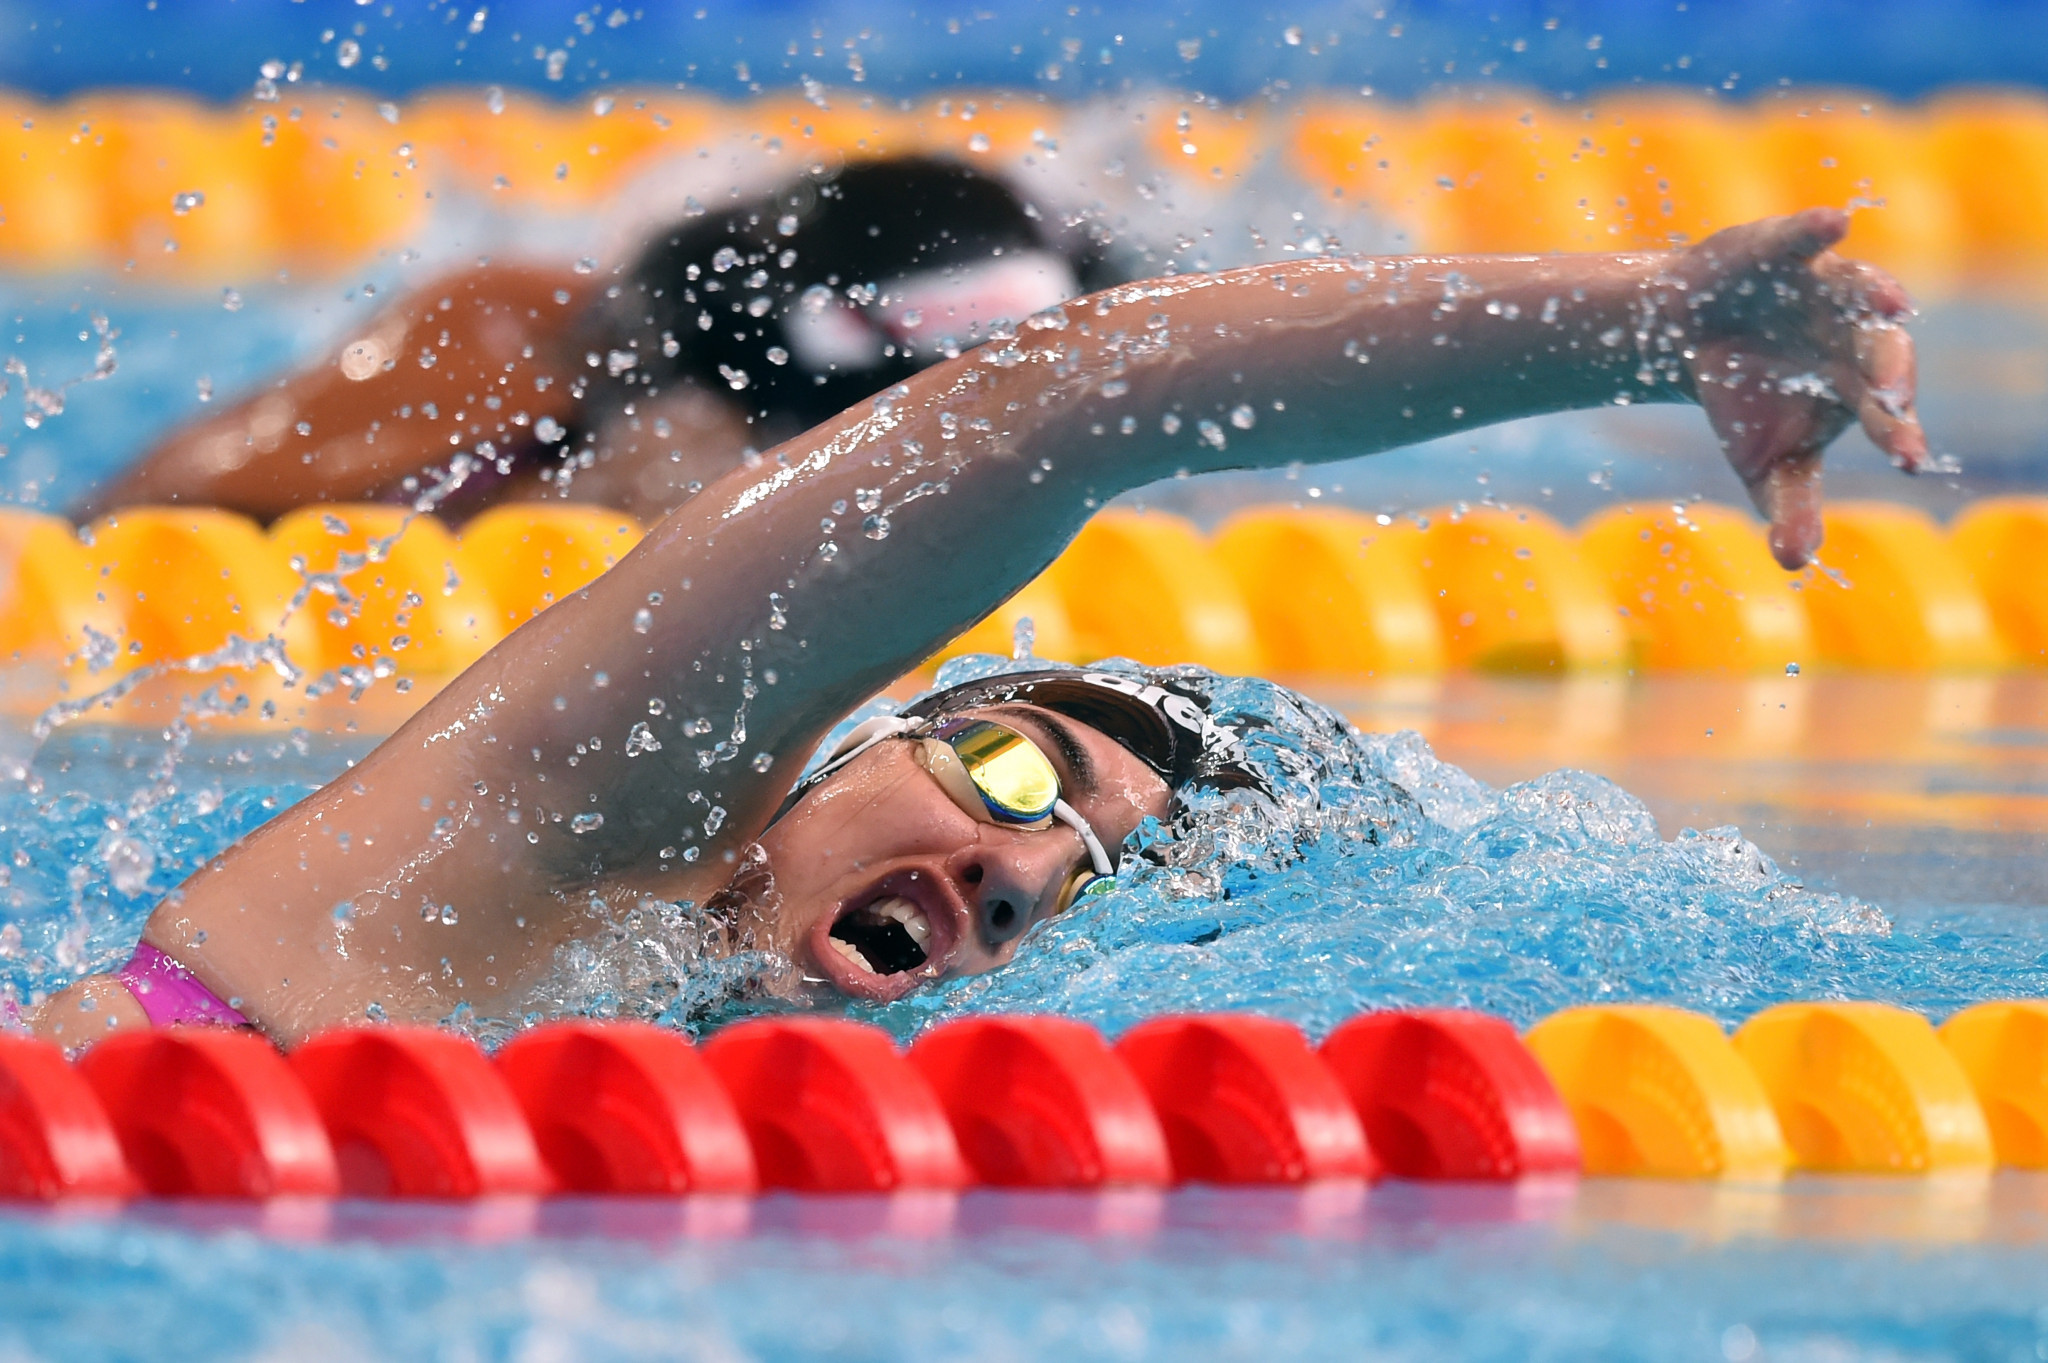 Swimmer Nada Arkaji was among two women who represented Qatar at the Rio 2016 Olympics  ©Getty Images